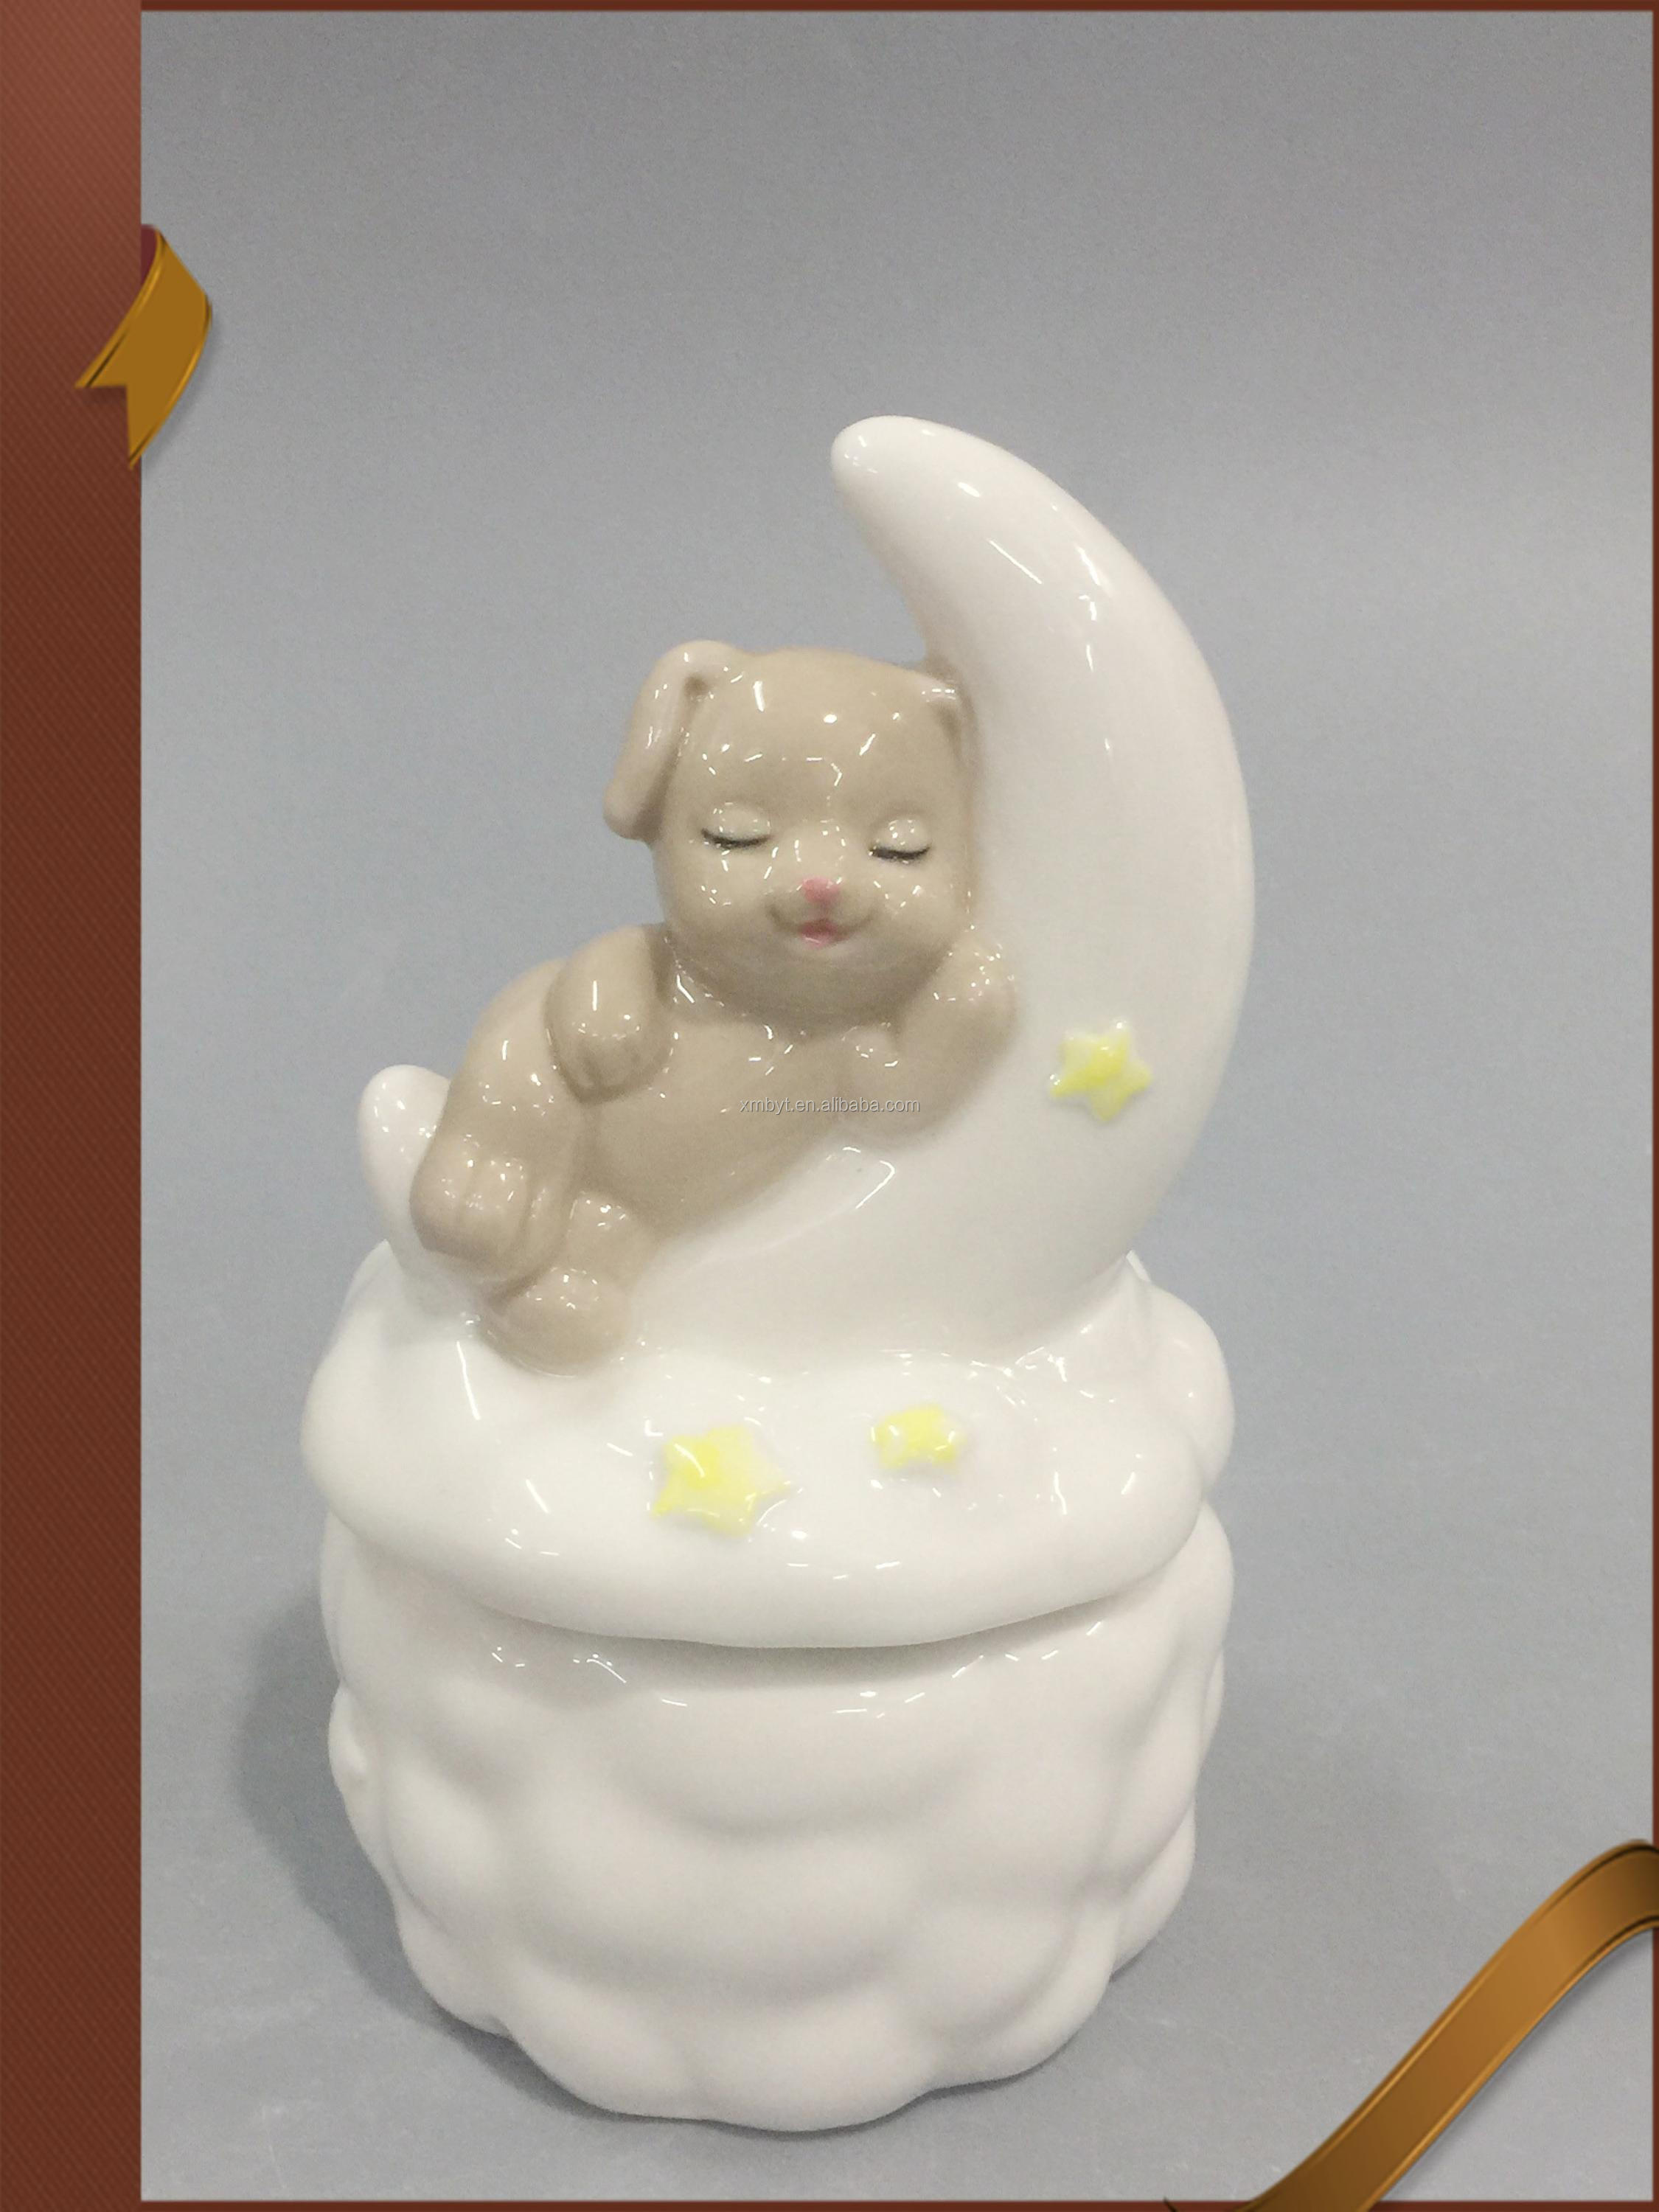 Small bear porcelain angel figurines with cake stand